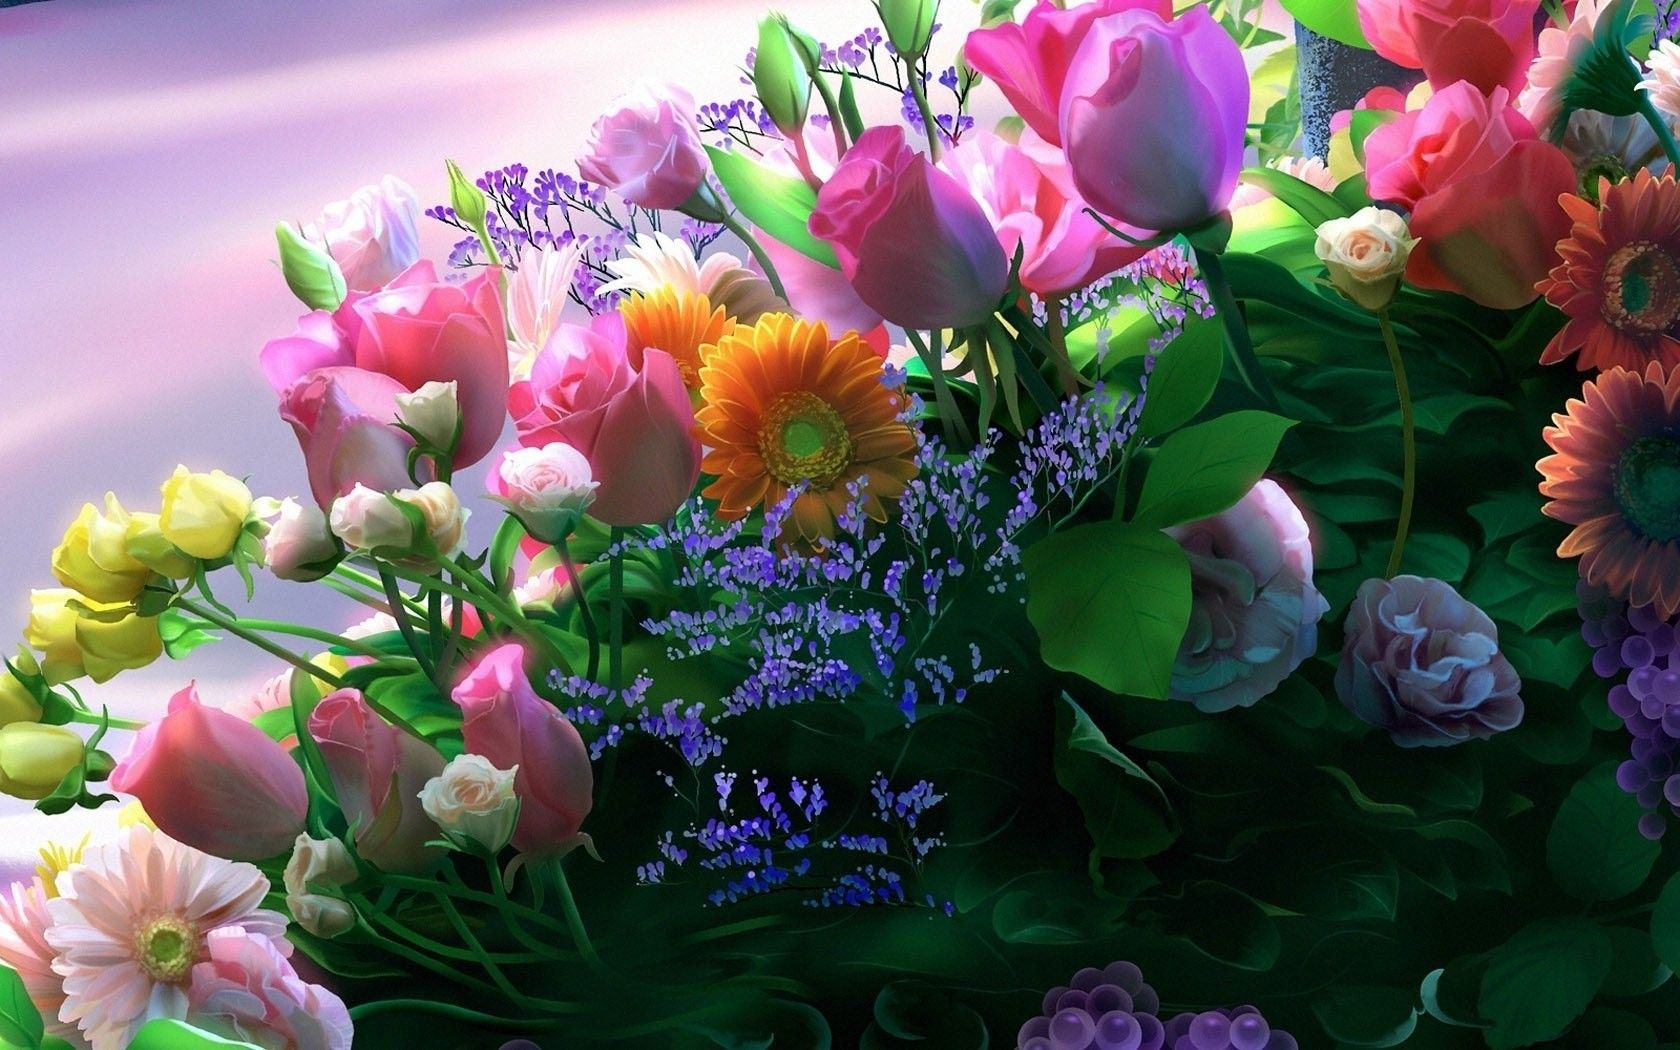 Flowers wallpapers high definition wallpapers high definition - Most Beautiful Flowers Wallpaper High Definition Roses Images Hd 1600 1200 Hd Flower Wallpapers